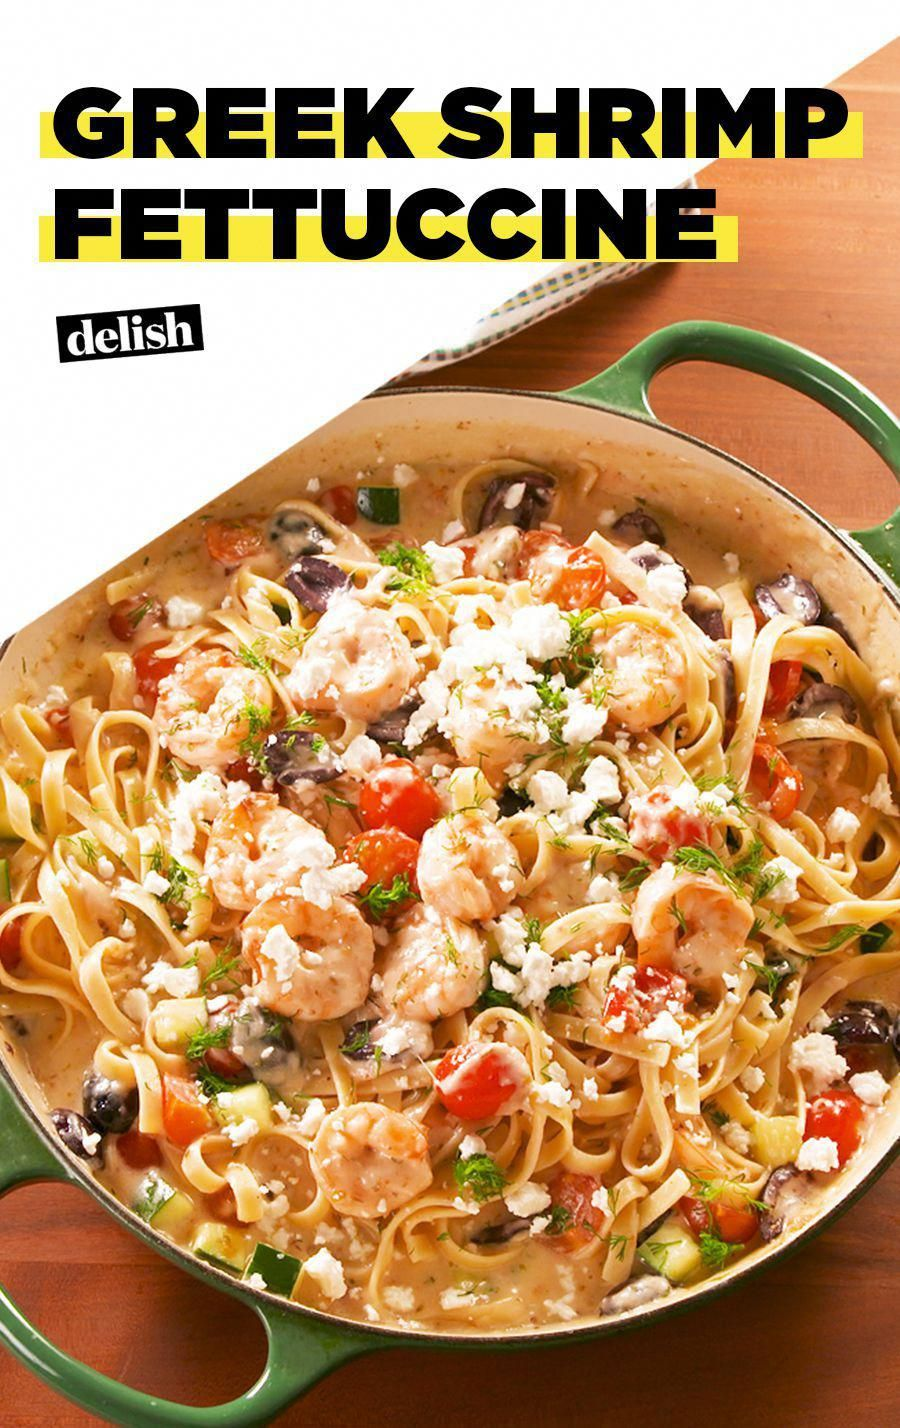 Greek Shrimp Fettuccine Is Full Of All Your Favorite Flavors from Delish #Recipes #QuickandEasy #Pasta #shrimprecipes #shrimpfettuccine